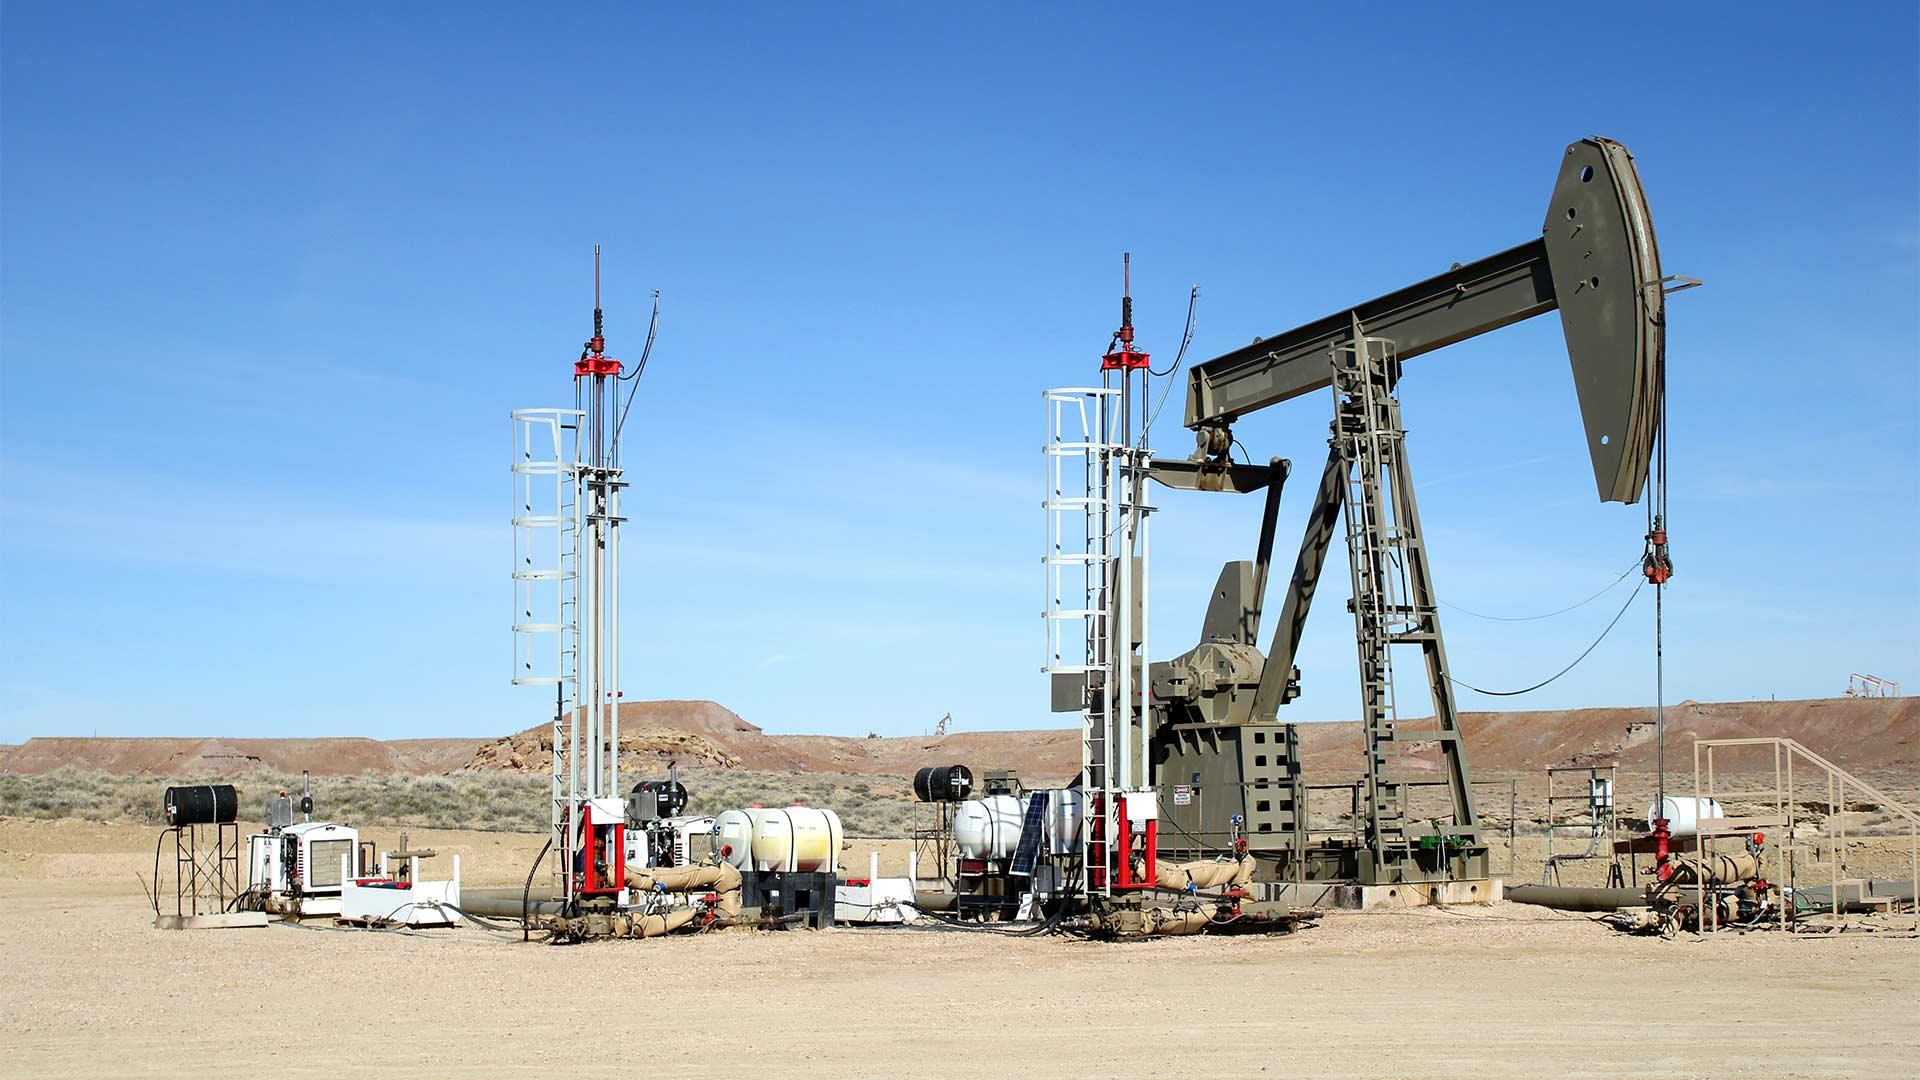 A pair of Morlift Hydraulic Rod Pumping Systems installed near a pump rig